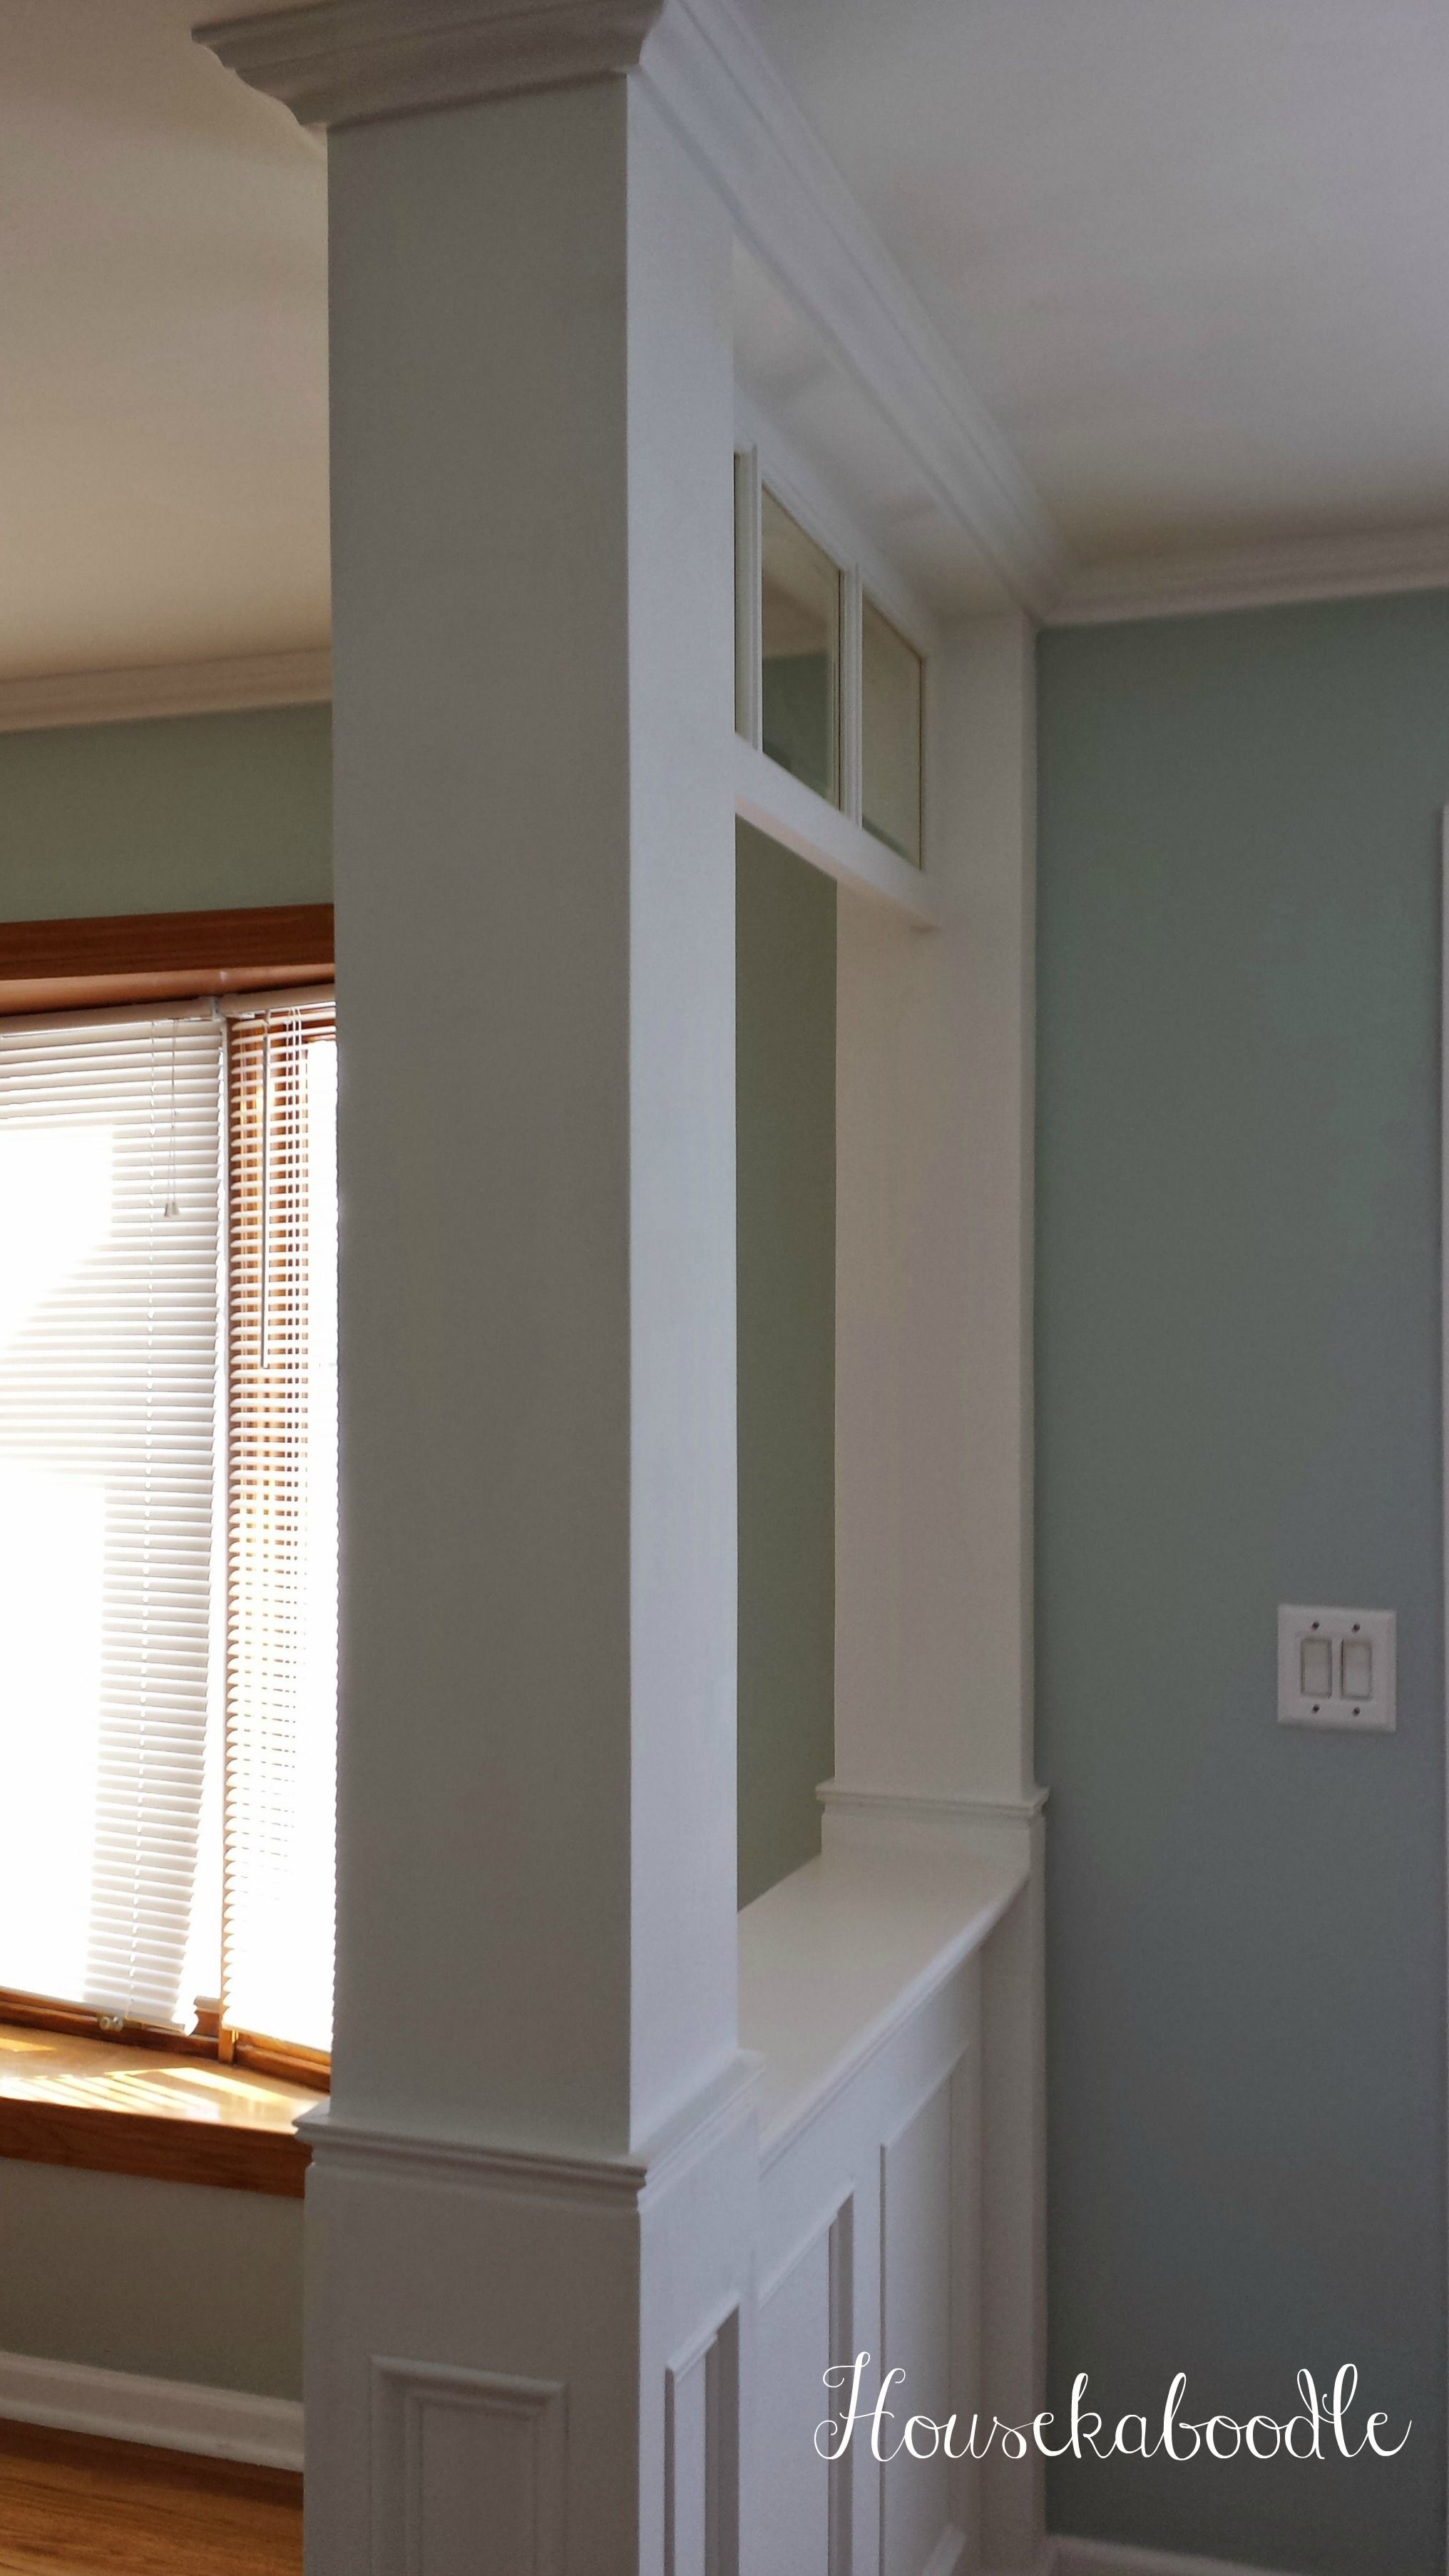 Entryway window ideas  our diy transom window entryway  room remodeling ideas and living